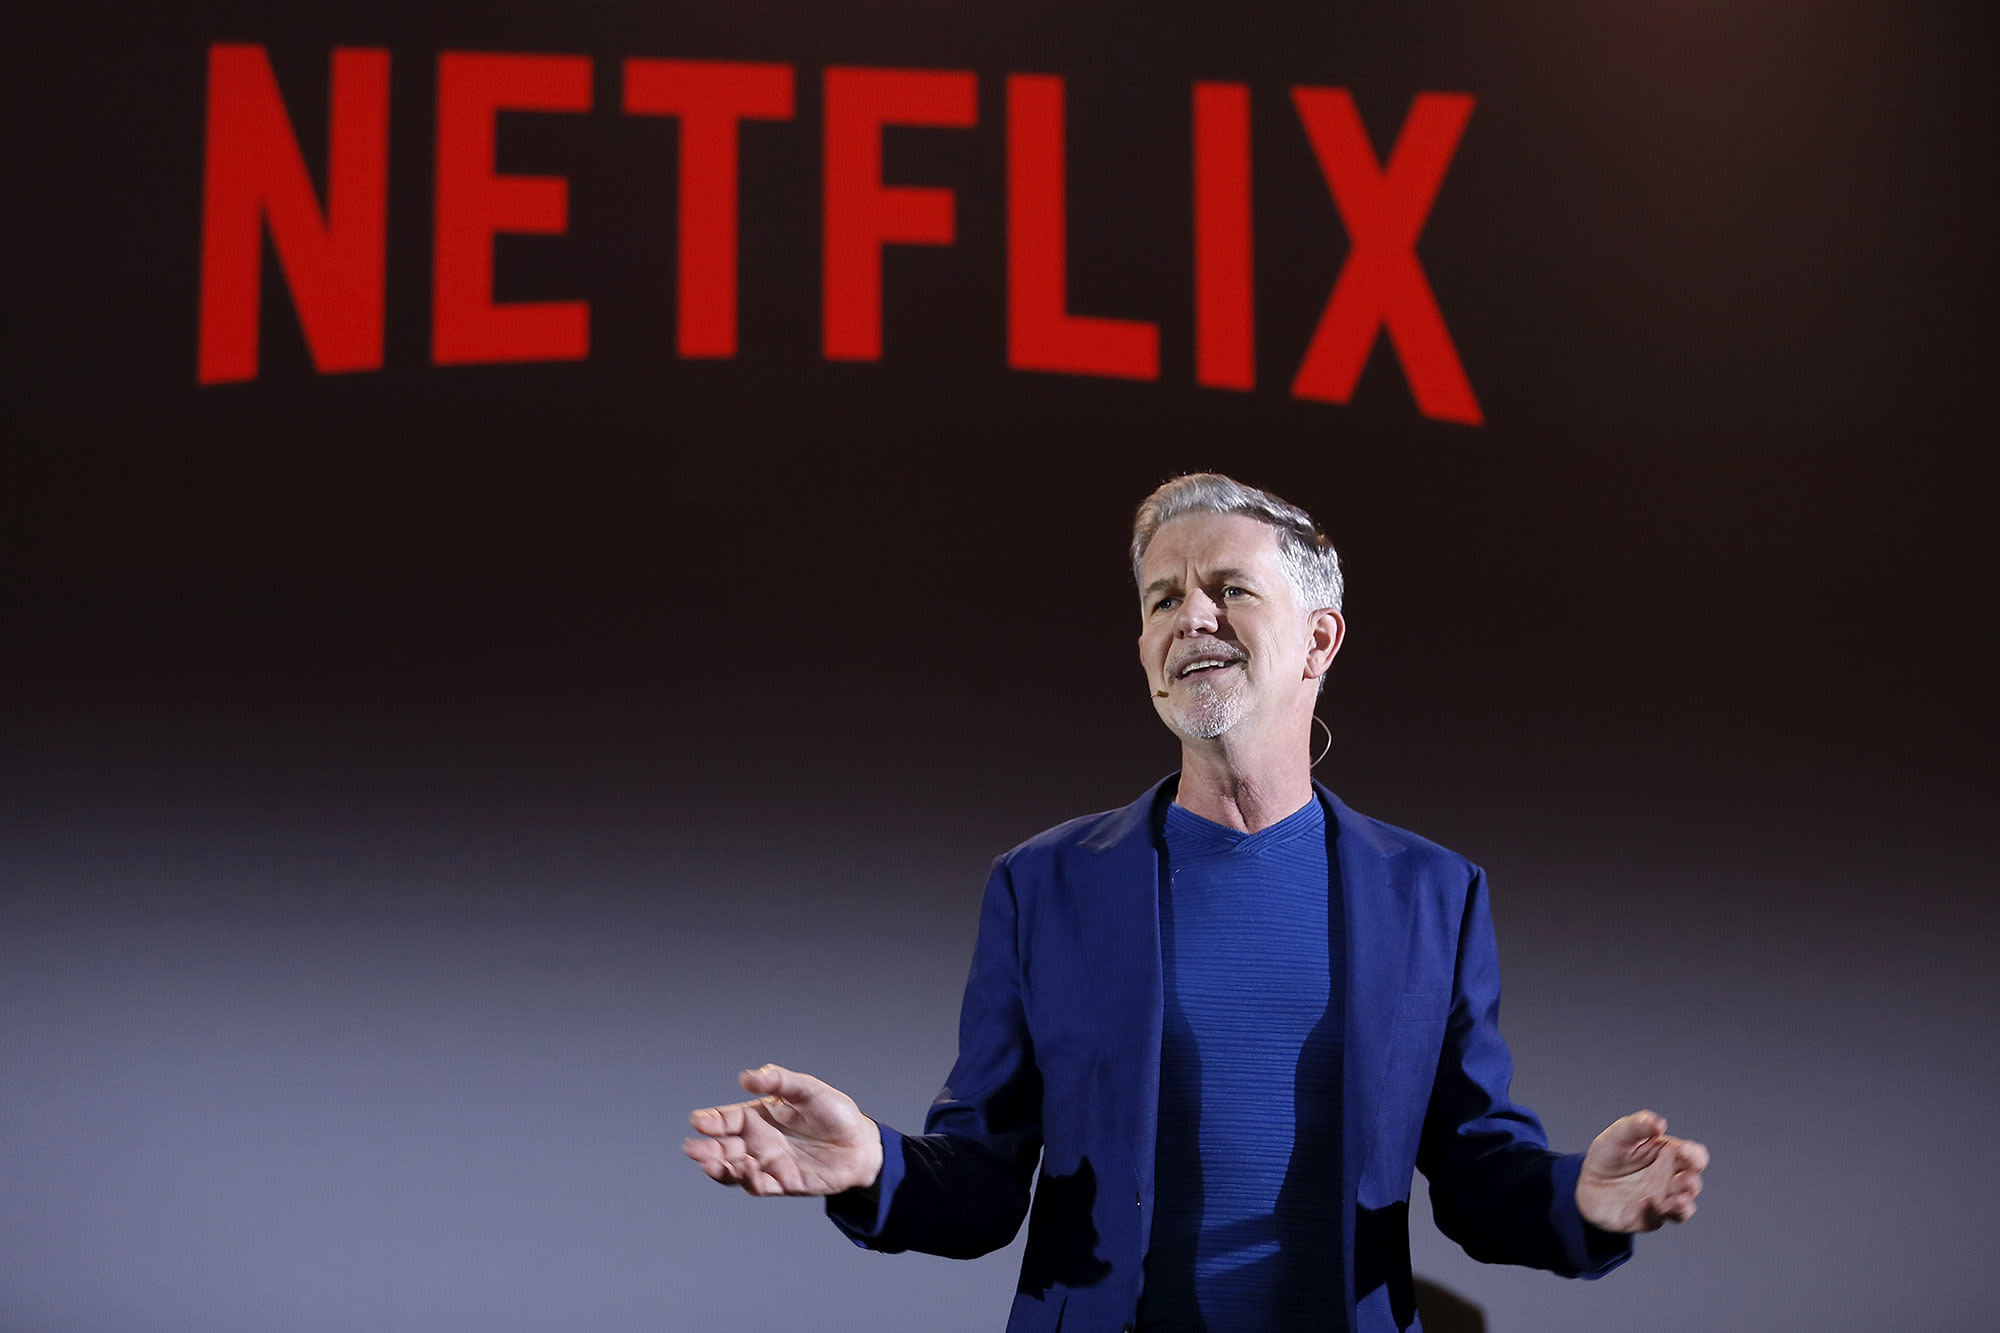 Here's what major analysts are predicting will happen with Netflix earnings after the bell